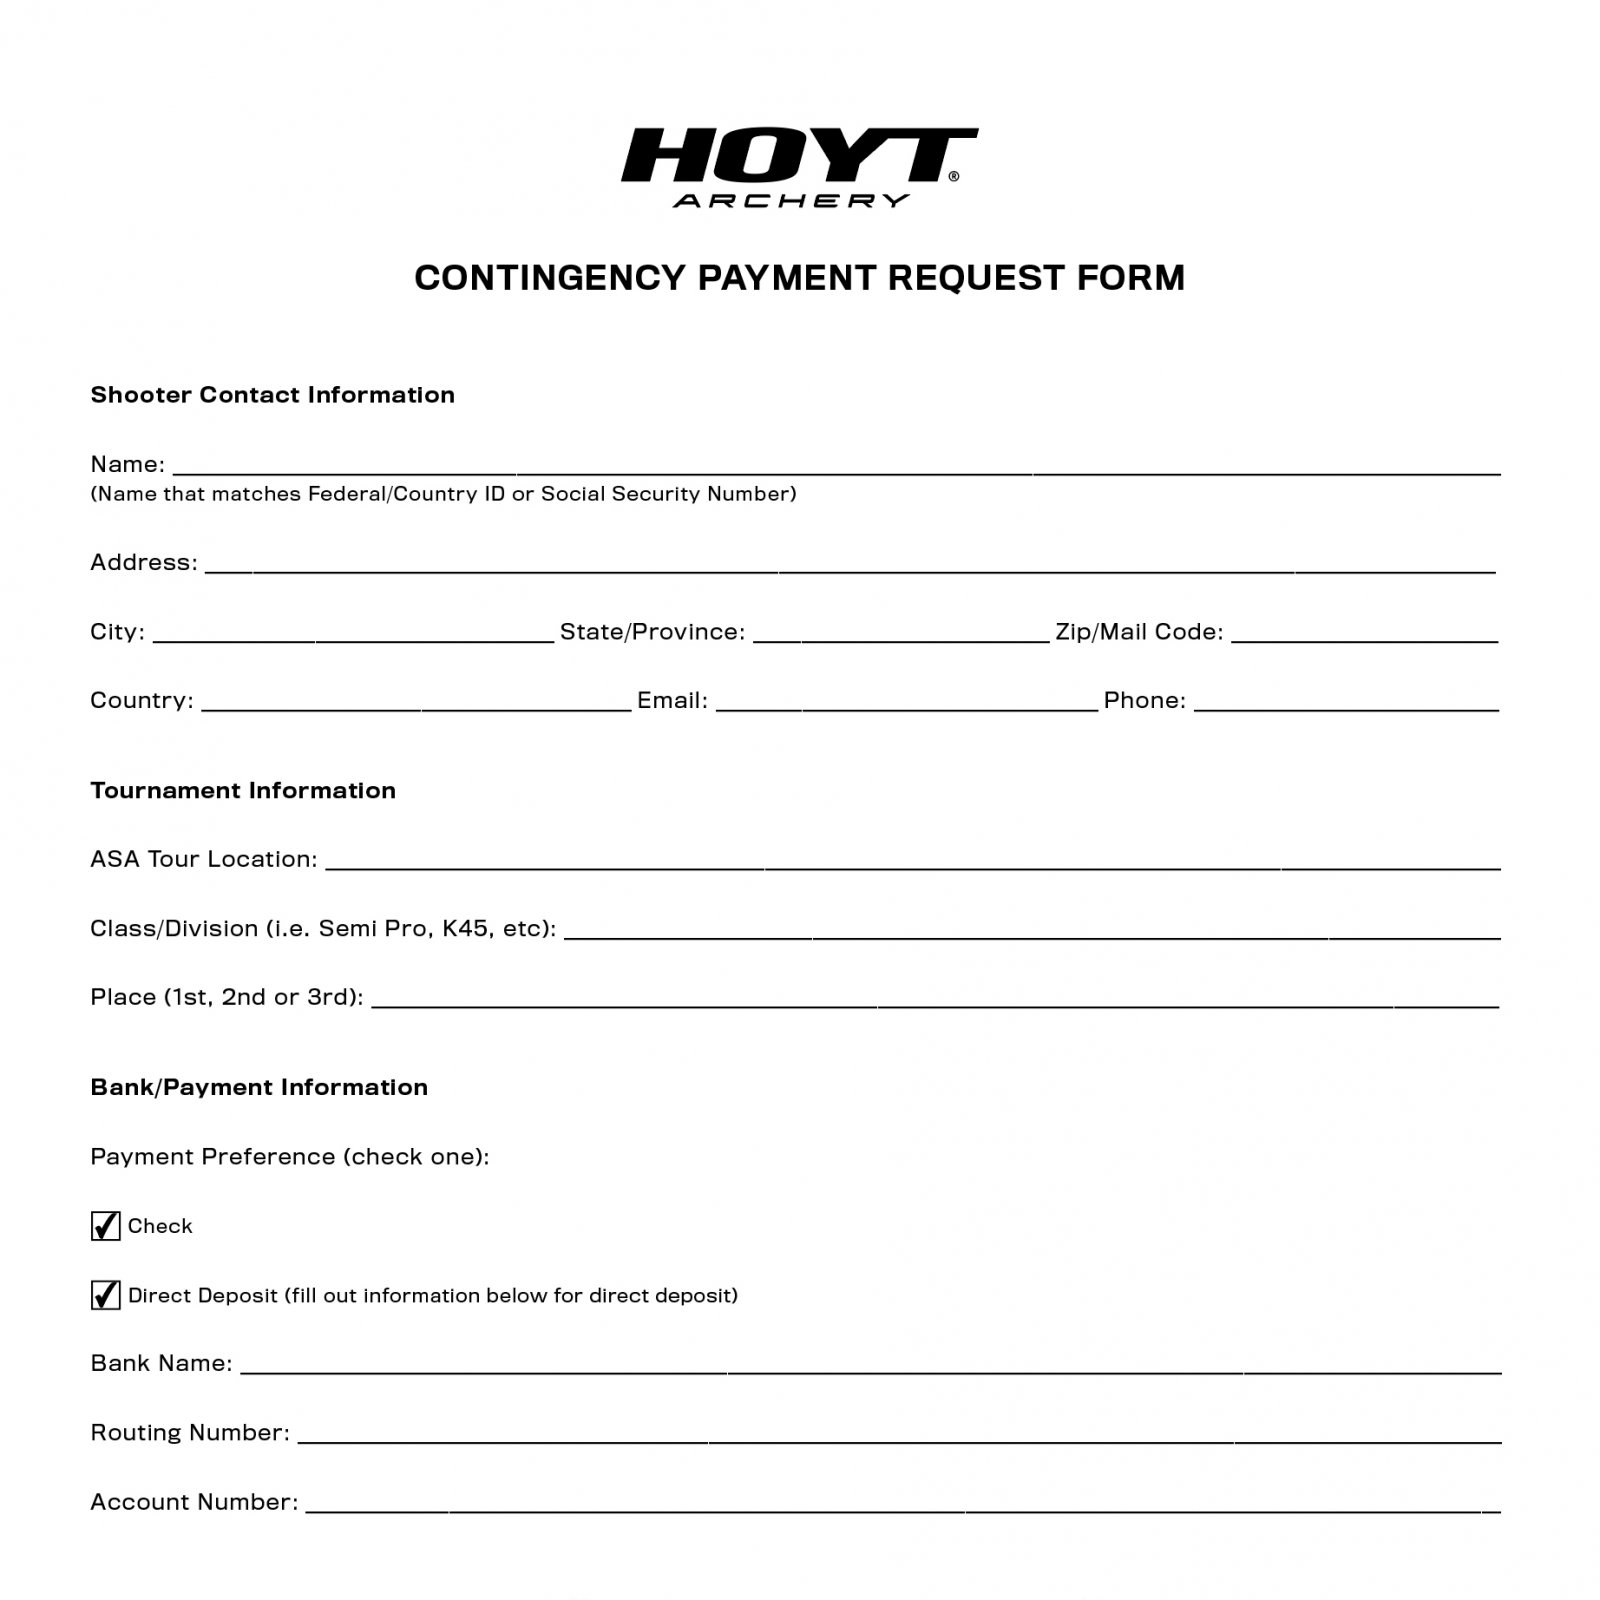 Contingency Payment Request Form